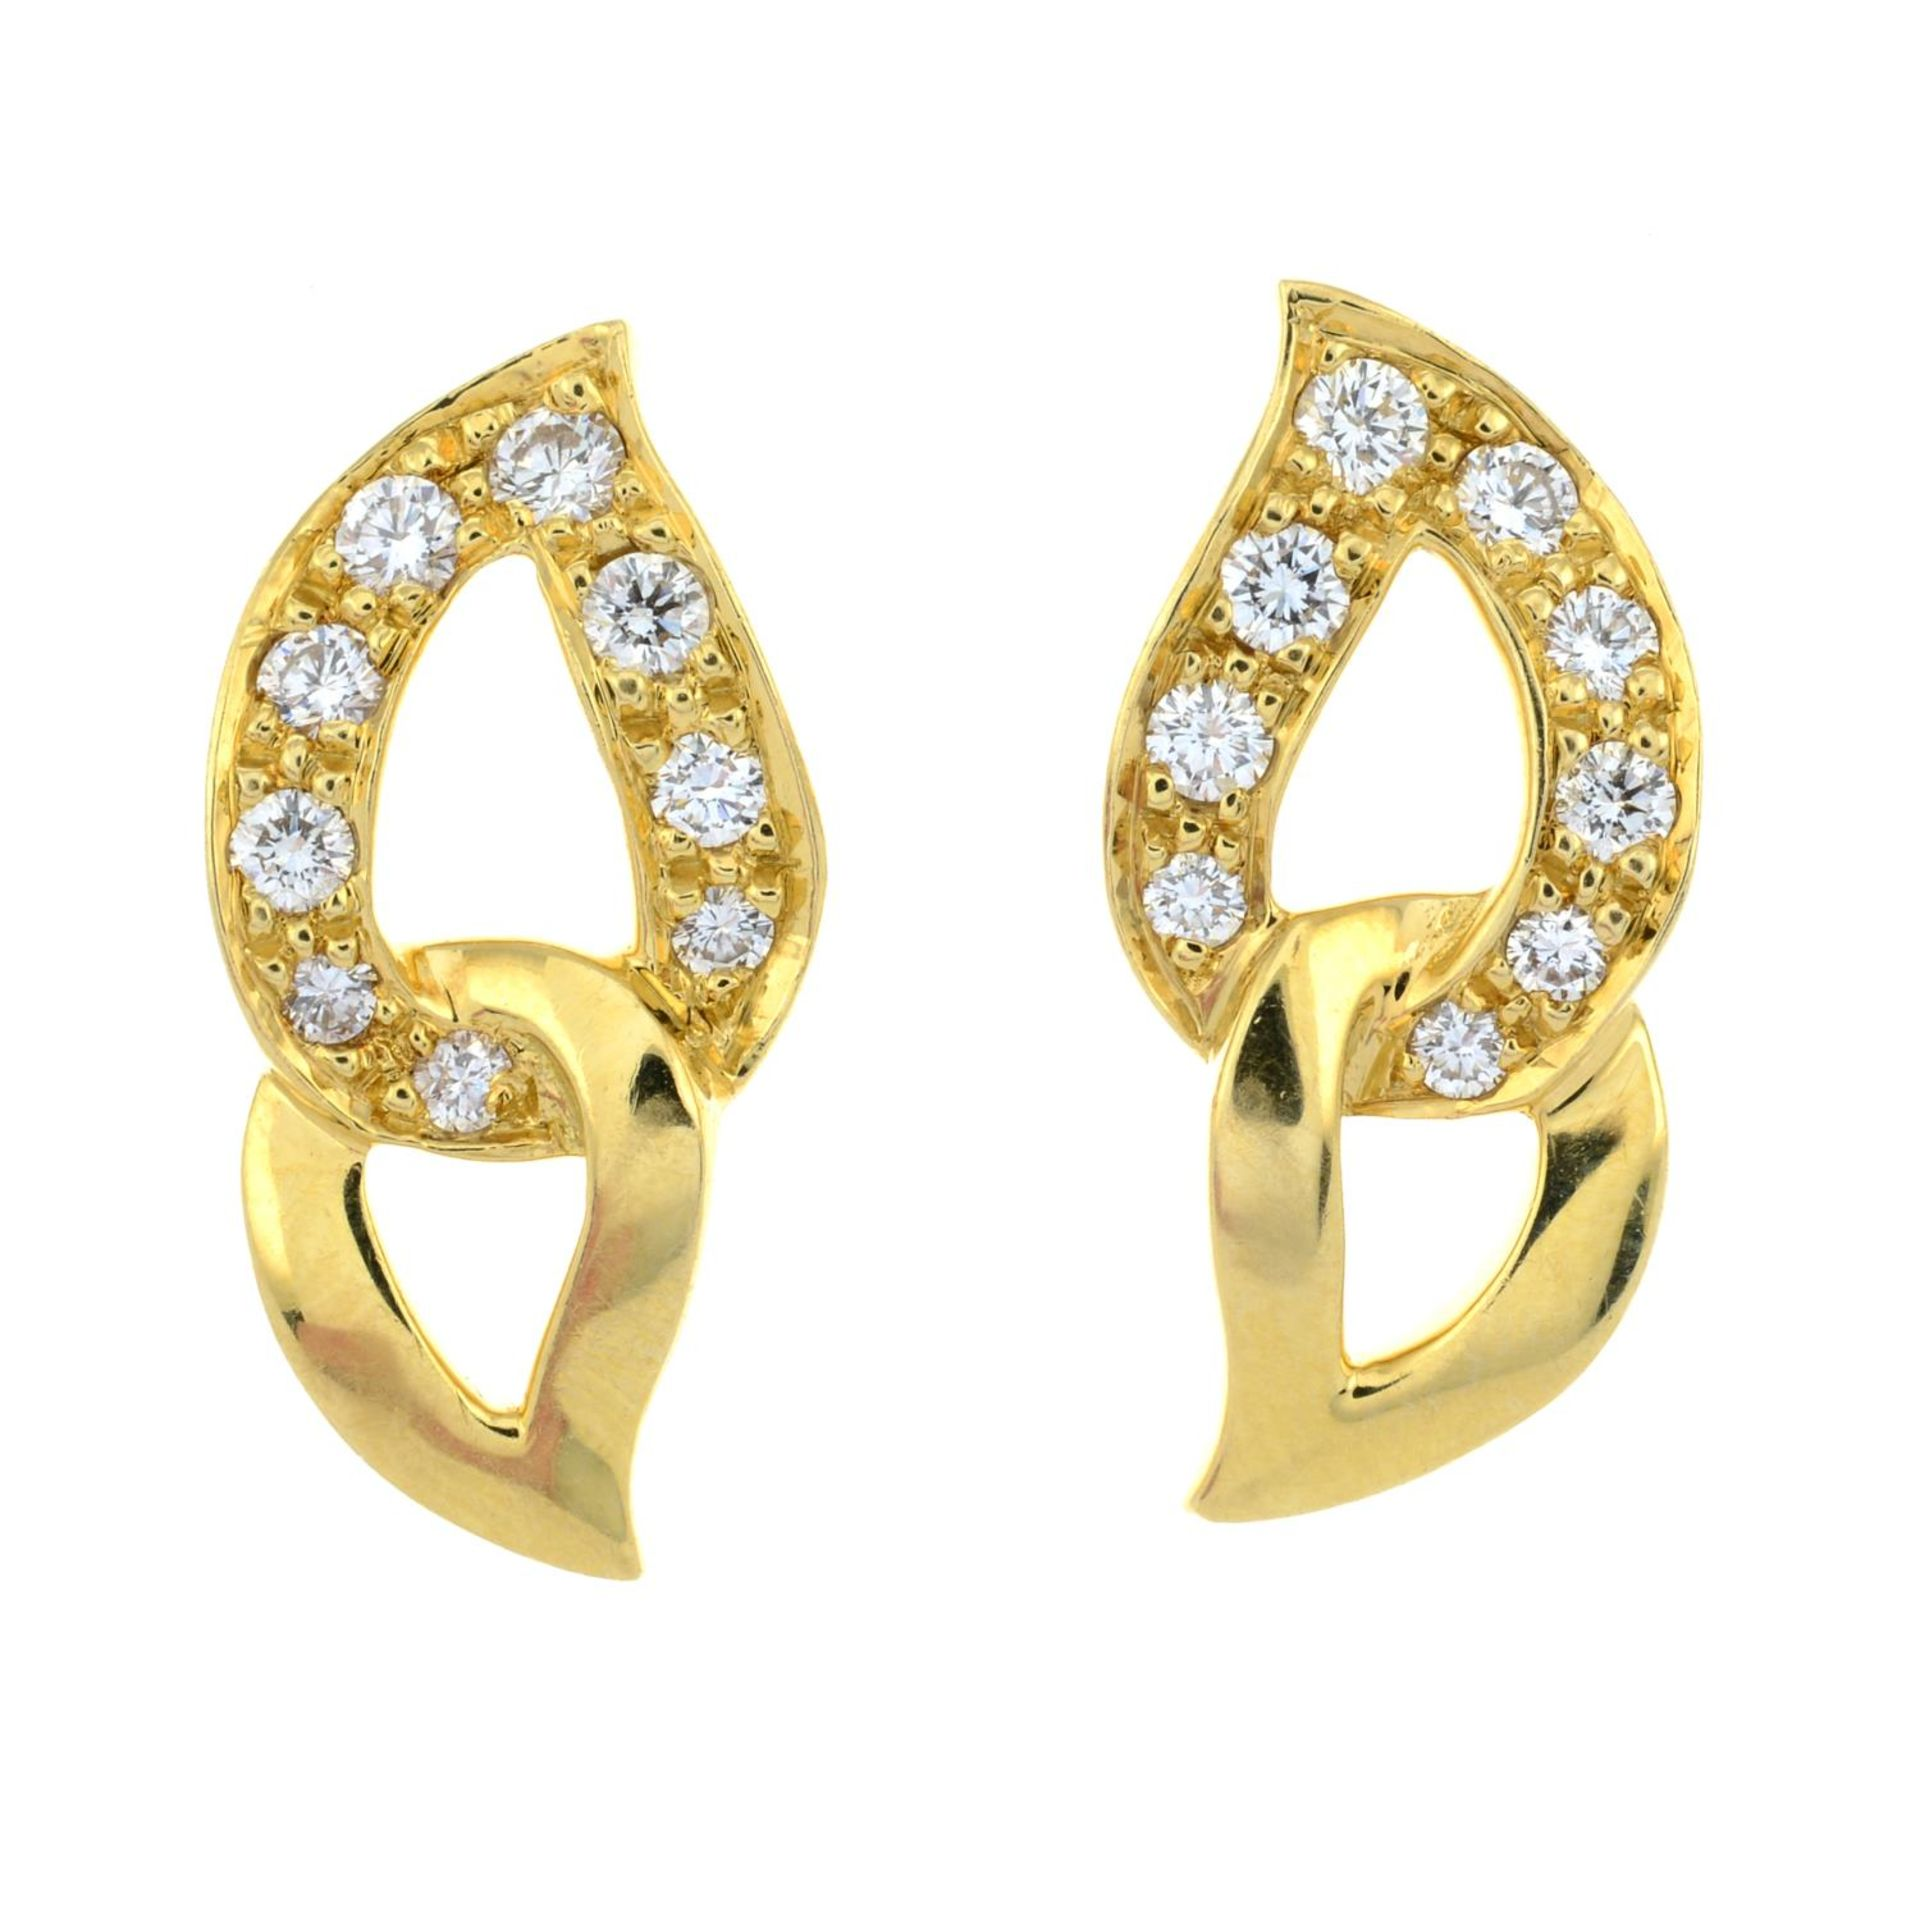 A pair of pavé-set diamond earrings, by Piaget. - Image 2 of 3